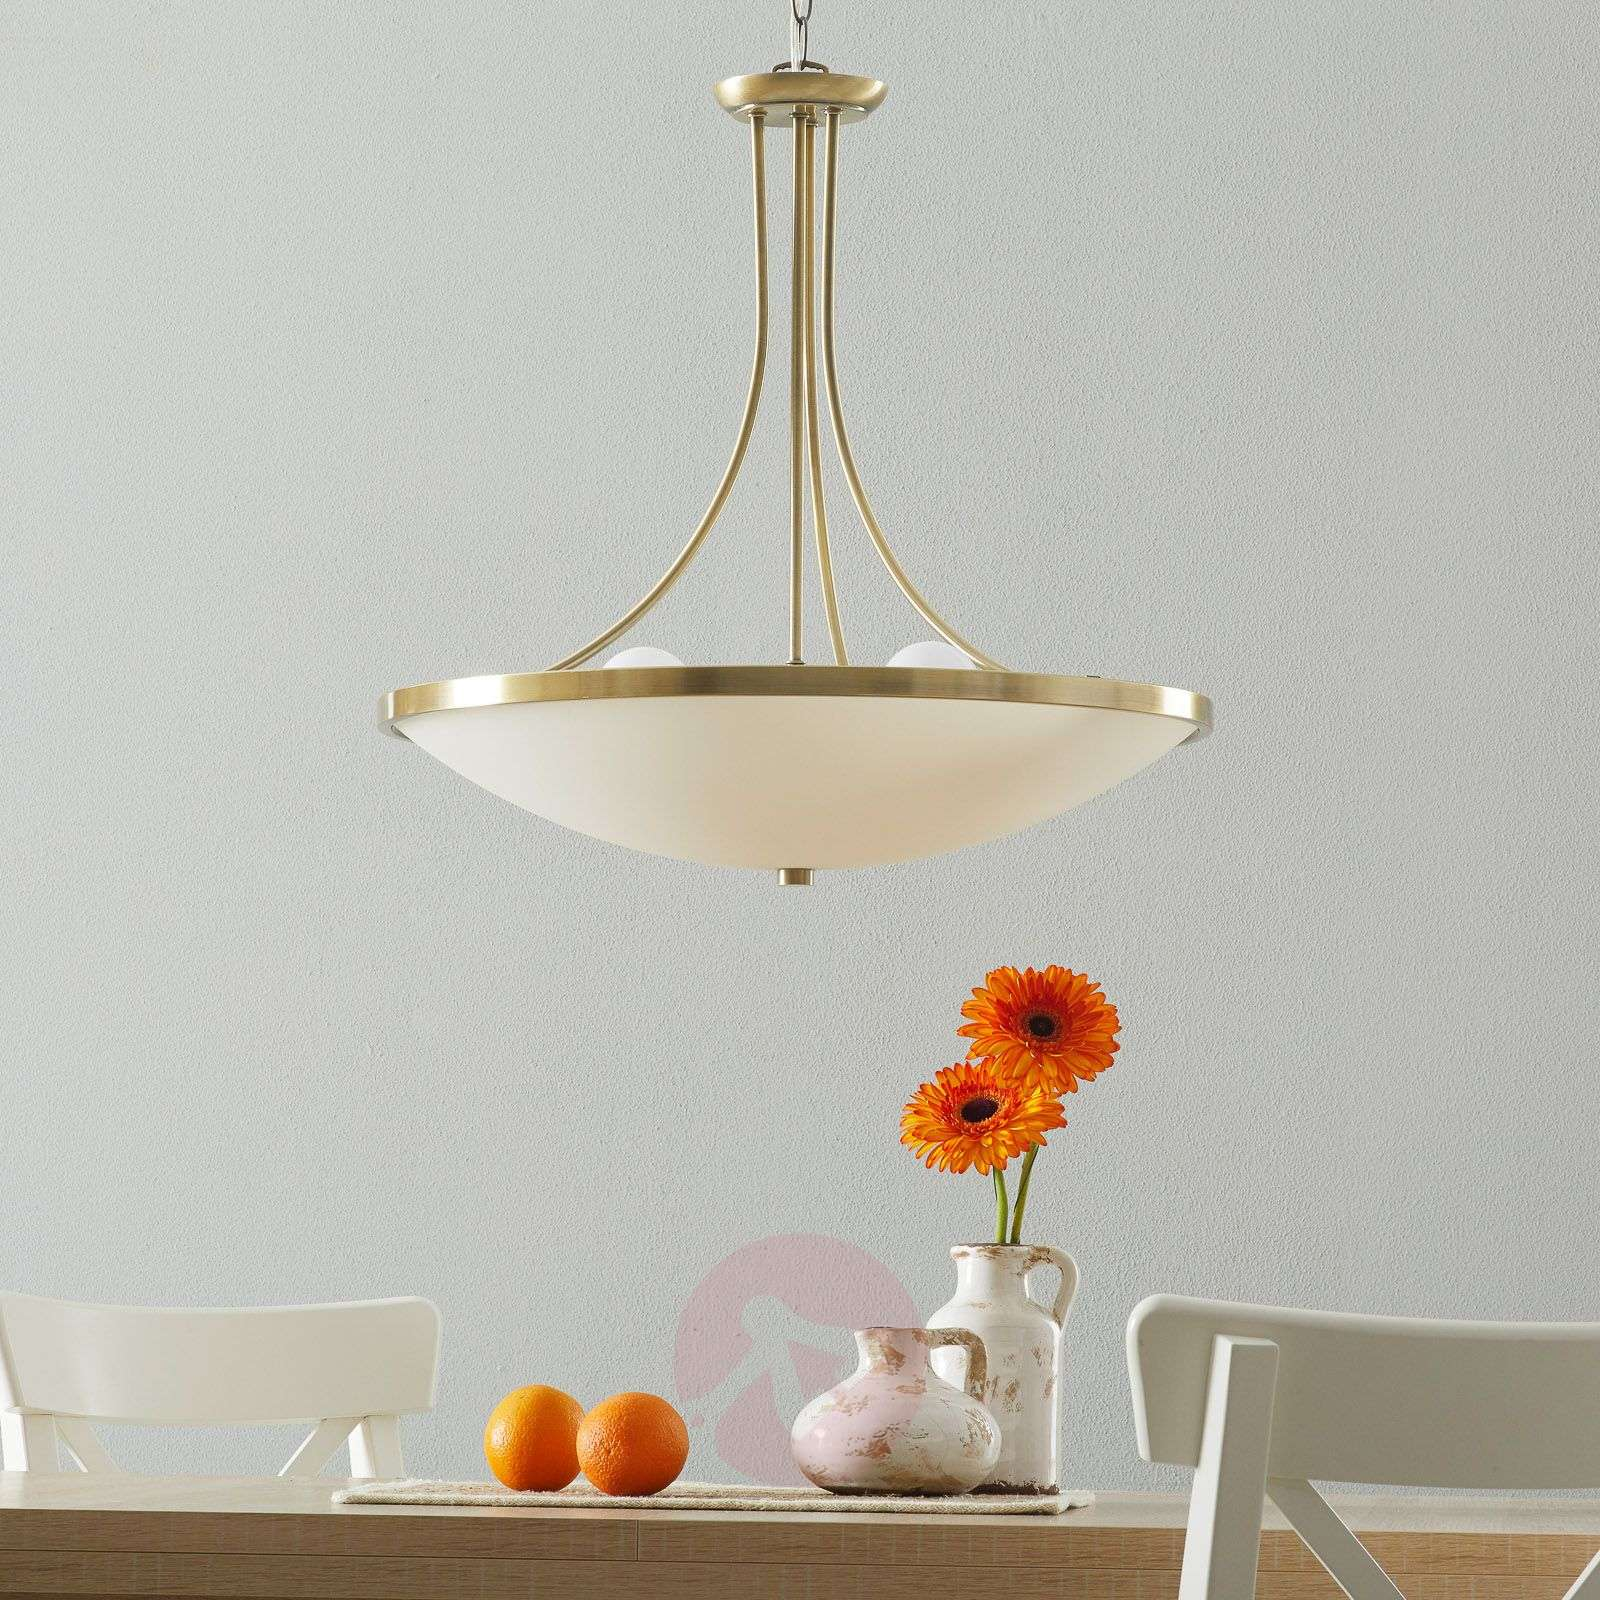 Tayla Hanging Light Impressive 56.5 cm-7253820-01